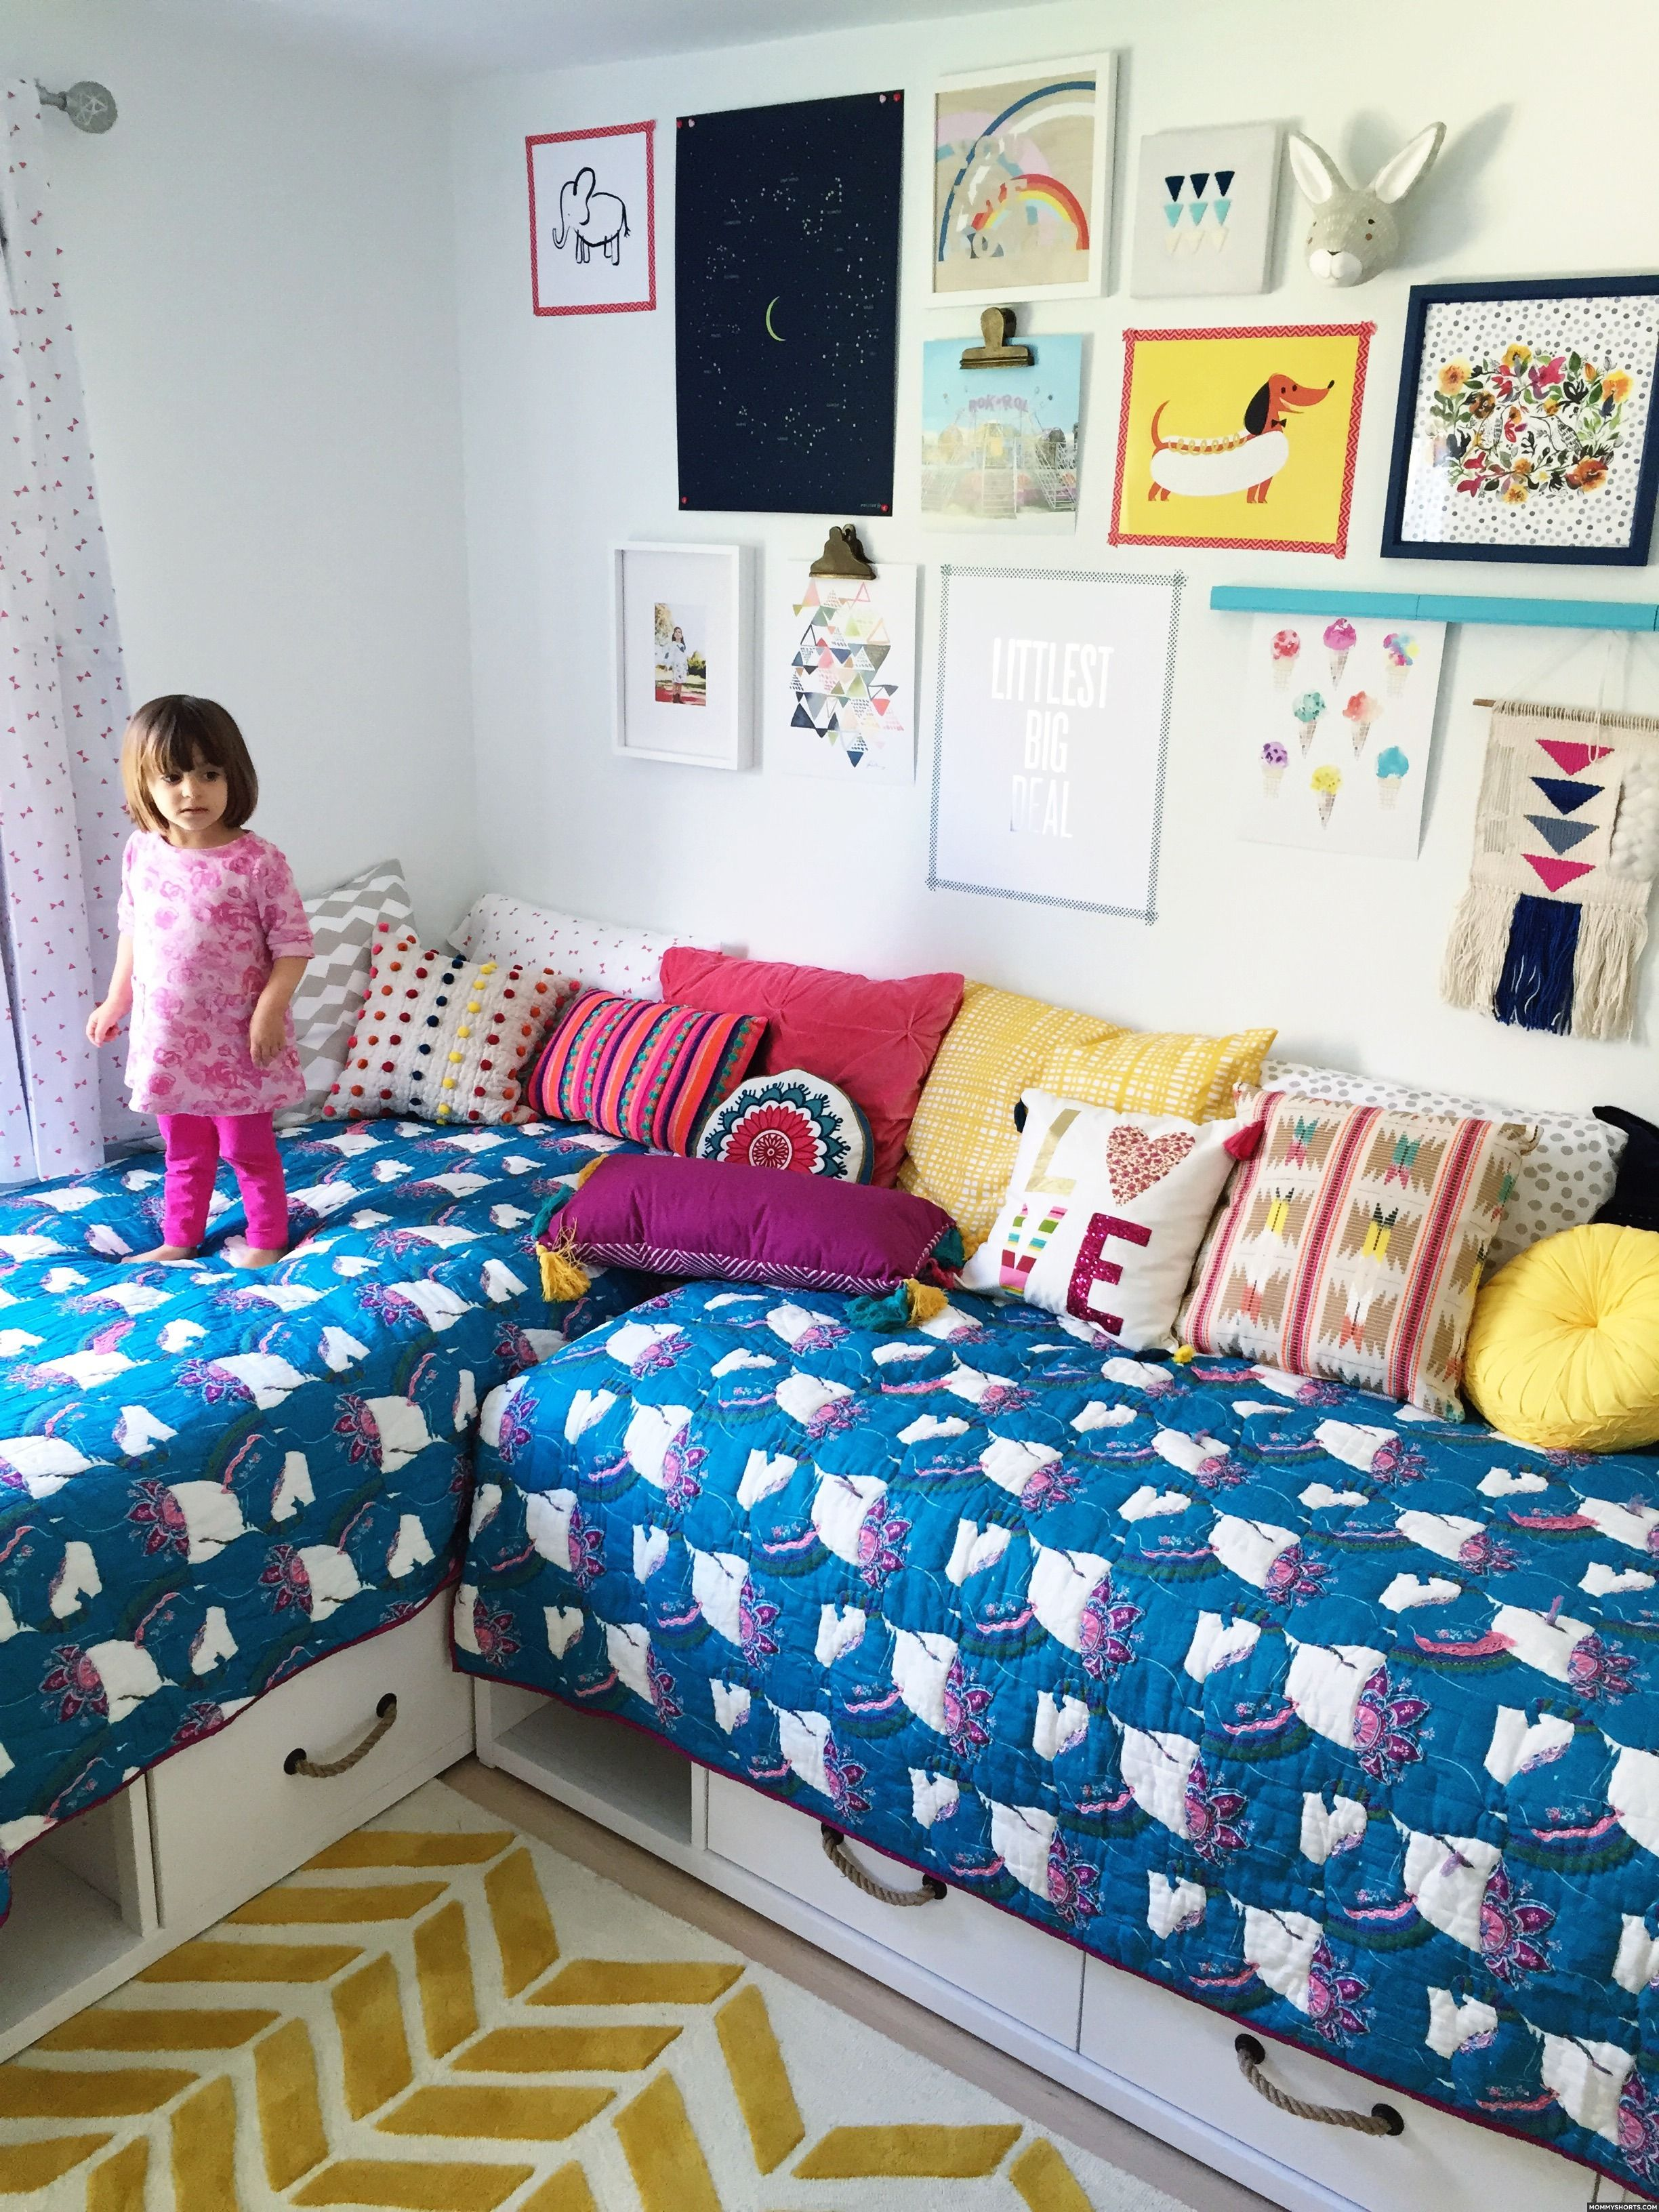 Kids bedrooms for two - Awesome Way To Do A Kids Shared Bedroom Need For My Boys